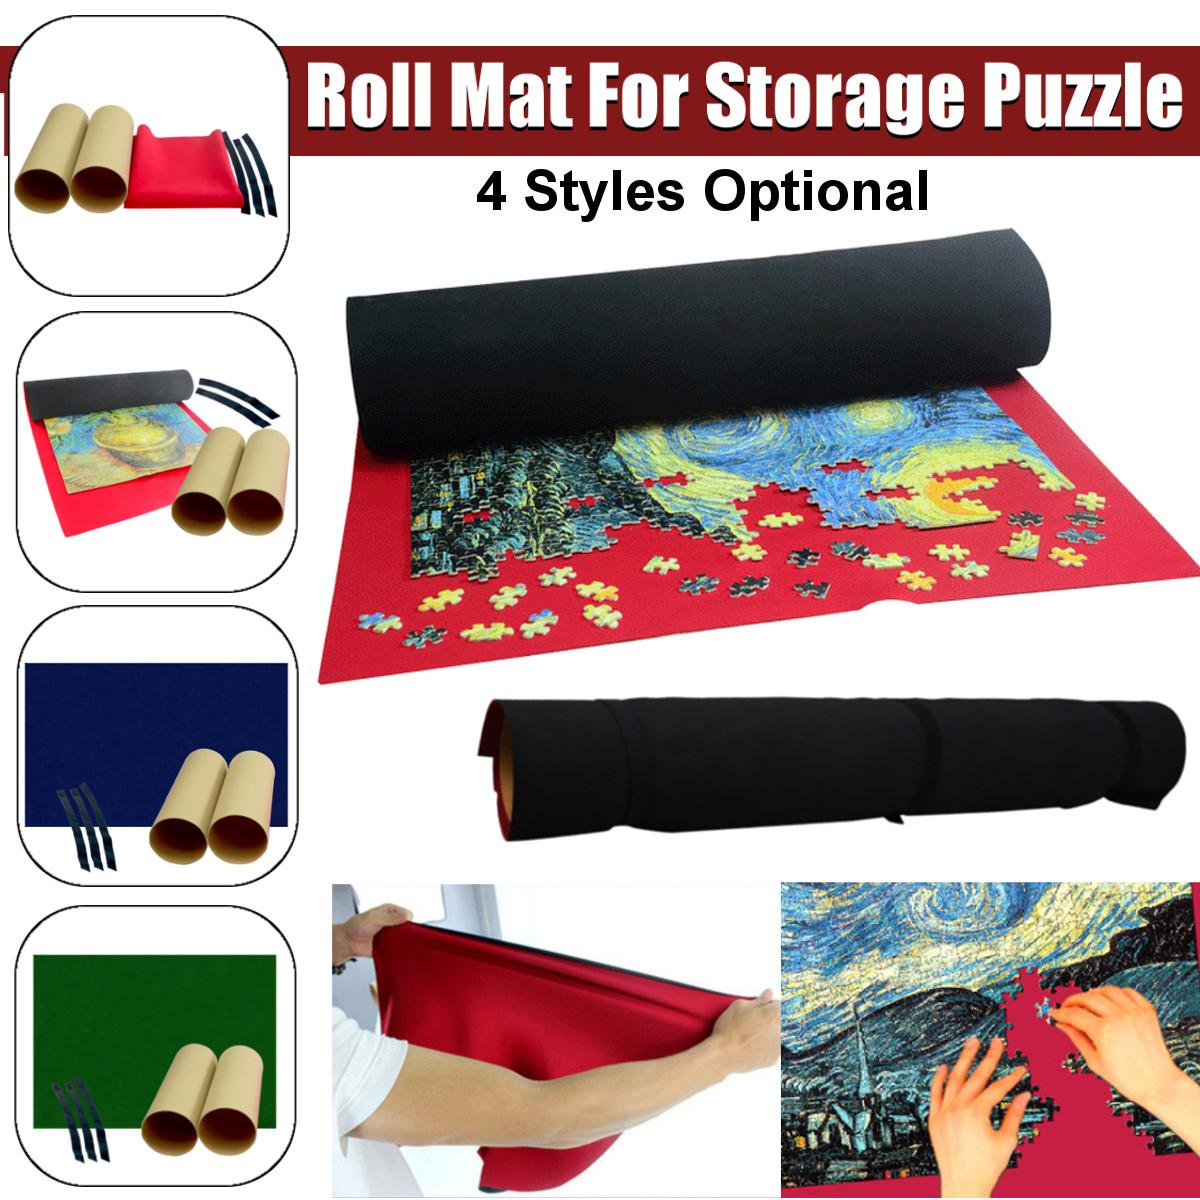 Portable Puzzles Mat Jigsaw Roll Mat  For Storage 1500 Pieces Jigsaw Puzzle Blanket  Accessories Travel Games Waterproof Mat